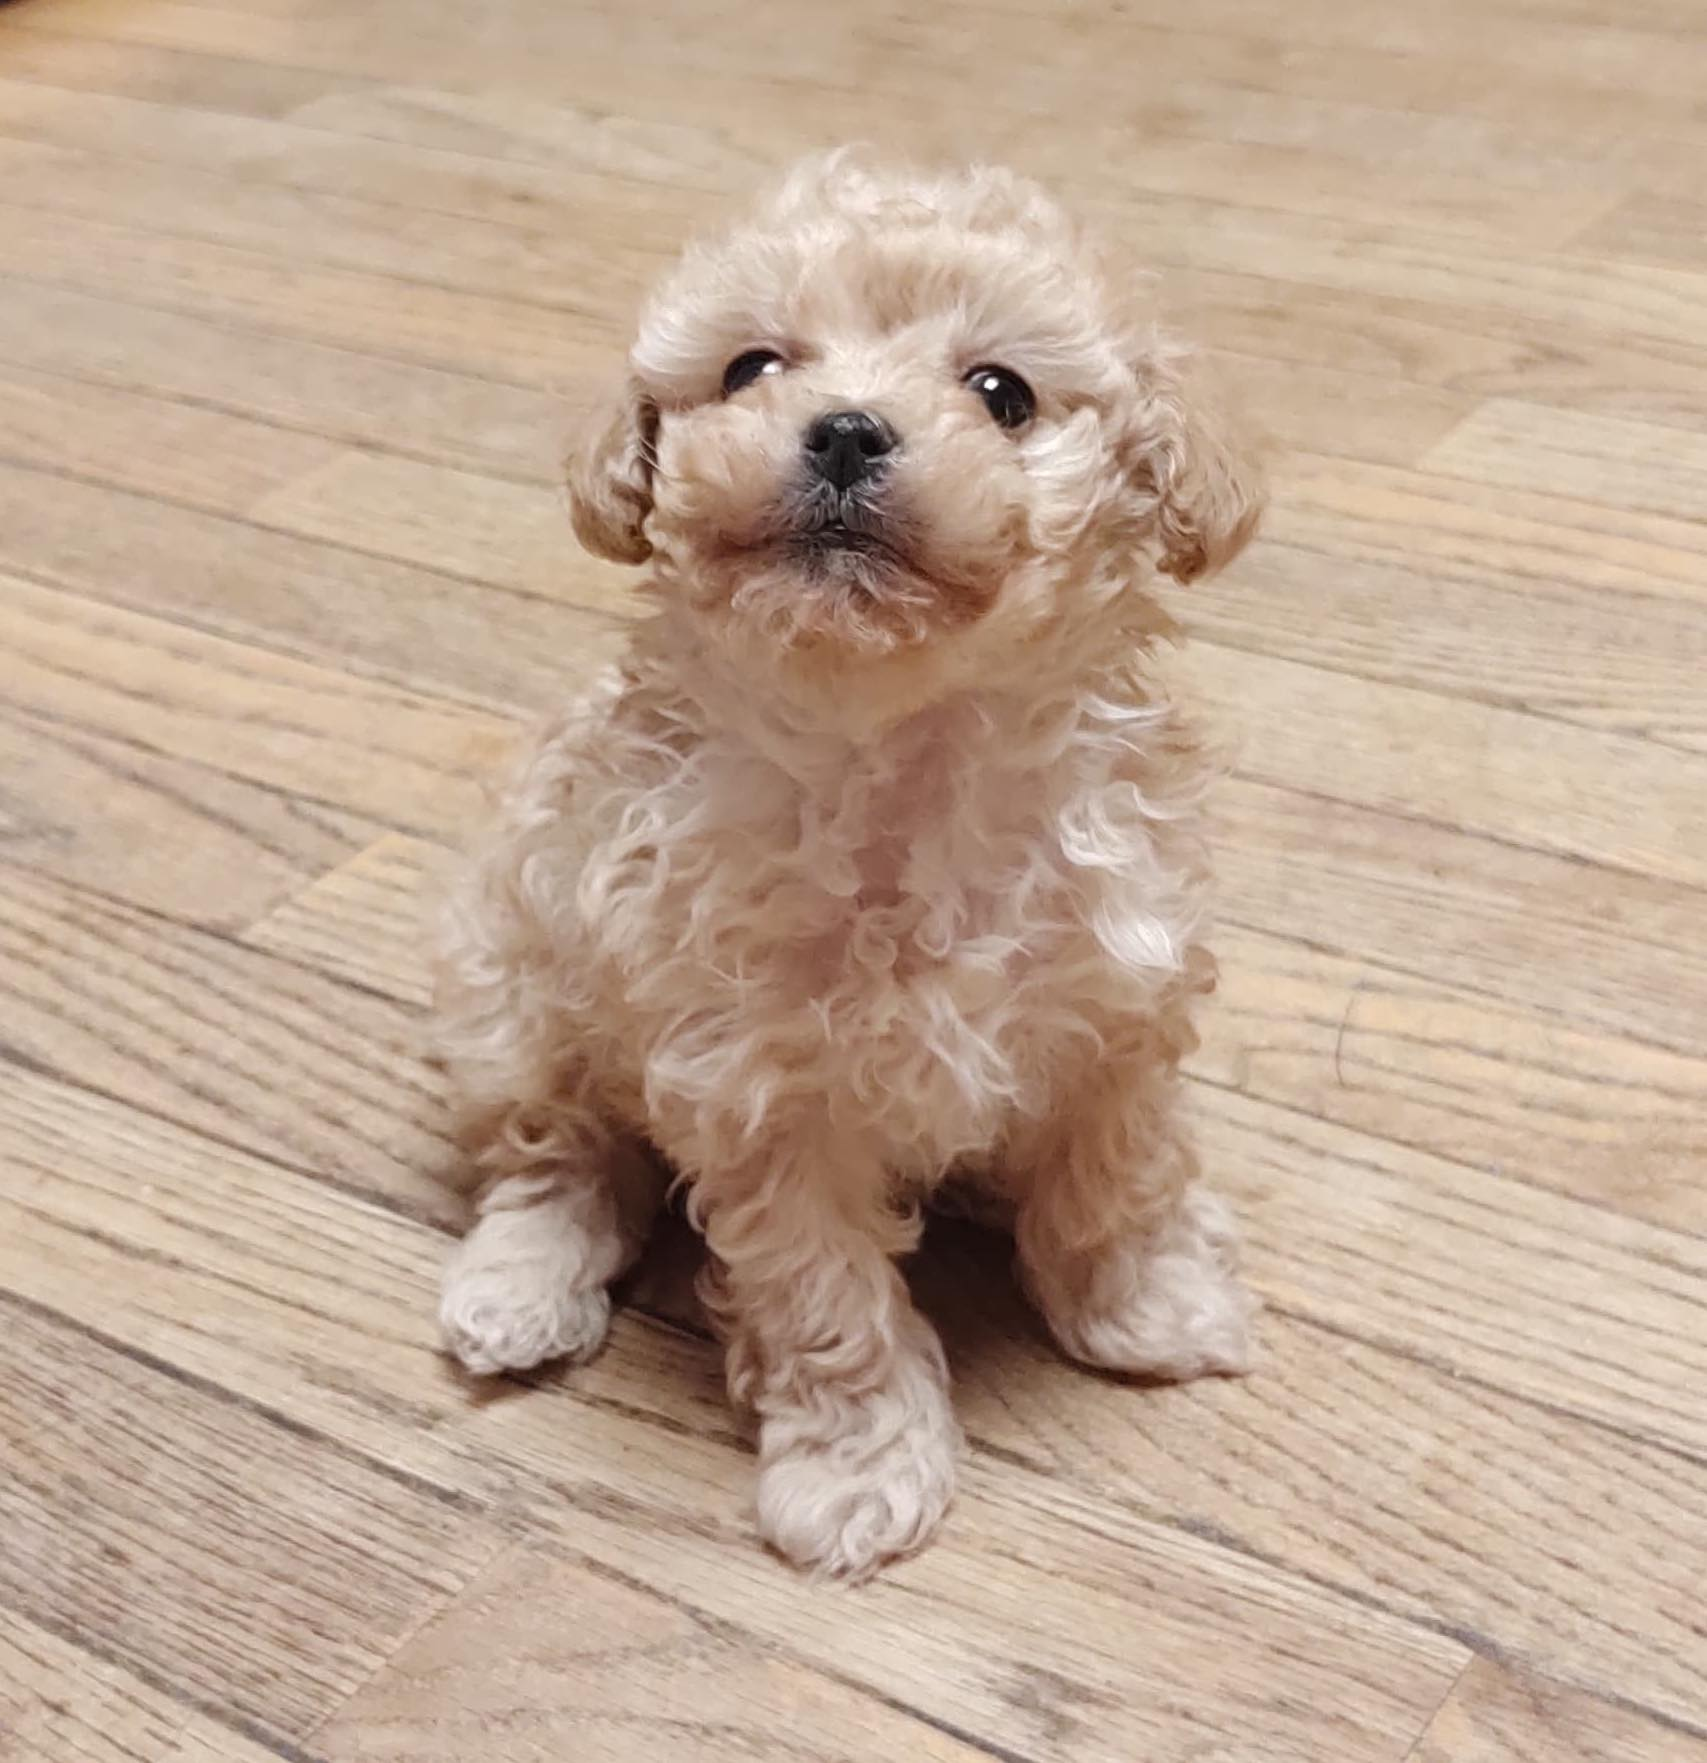 Female Toy Apricot Poodle